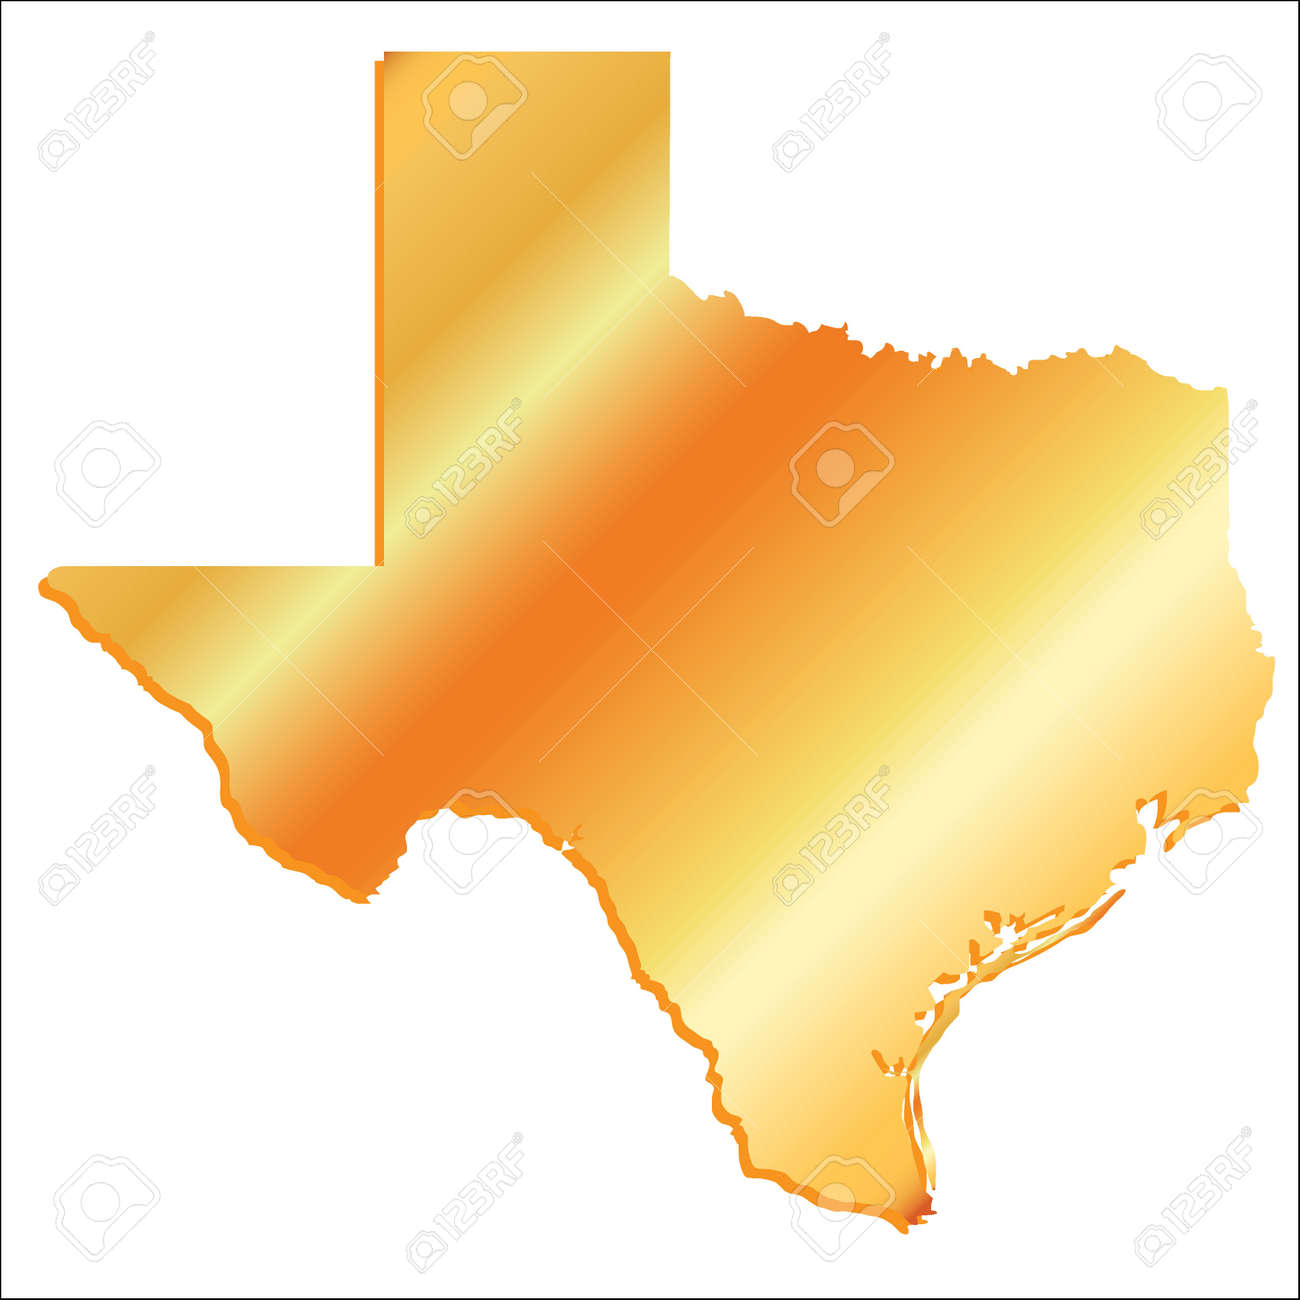 3d Map Of Texas.3d Texas Usa Gold Outline Map With Shadow